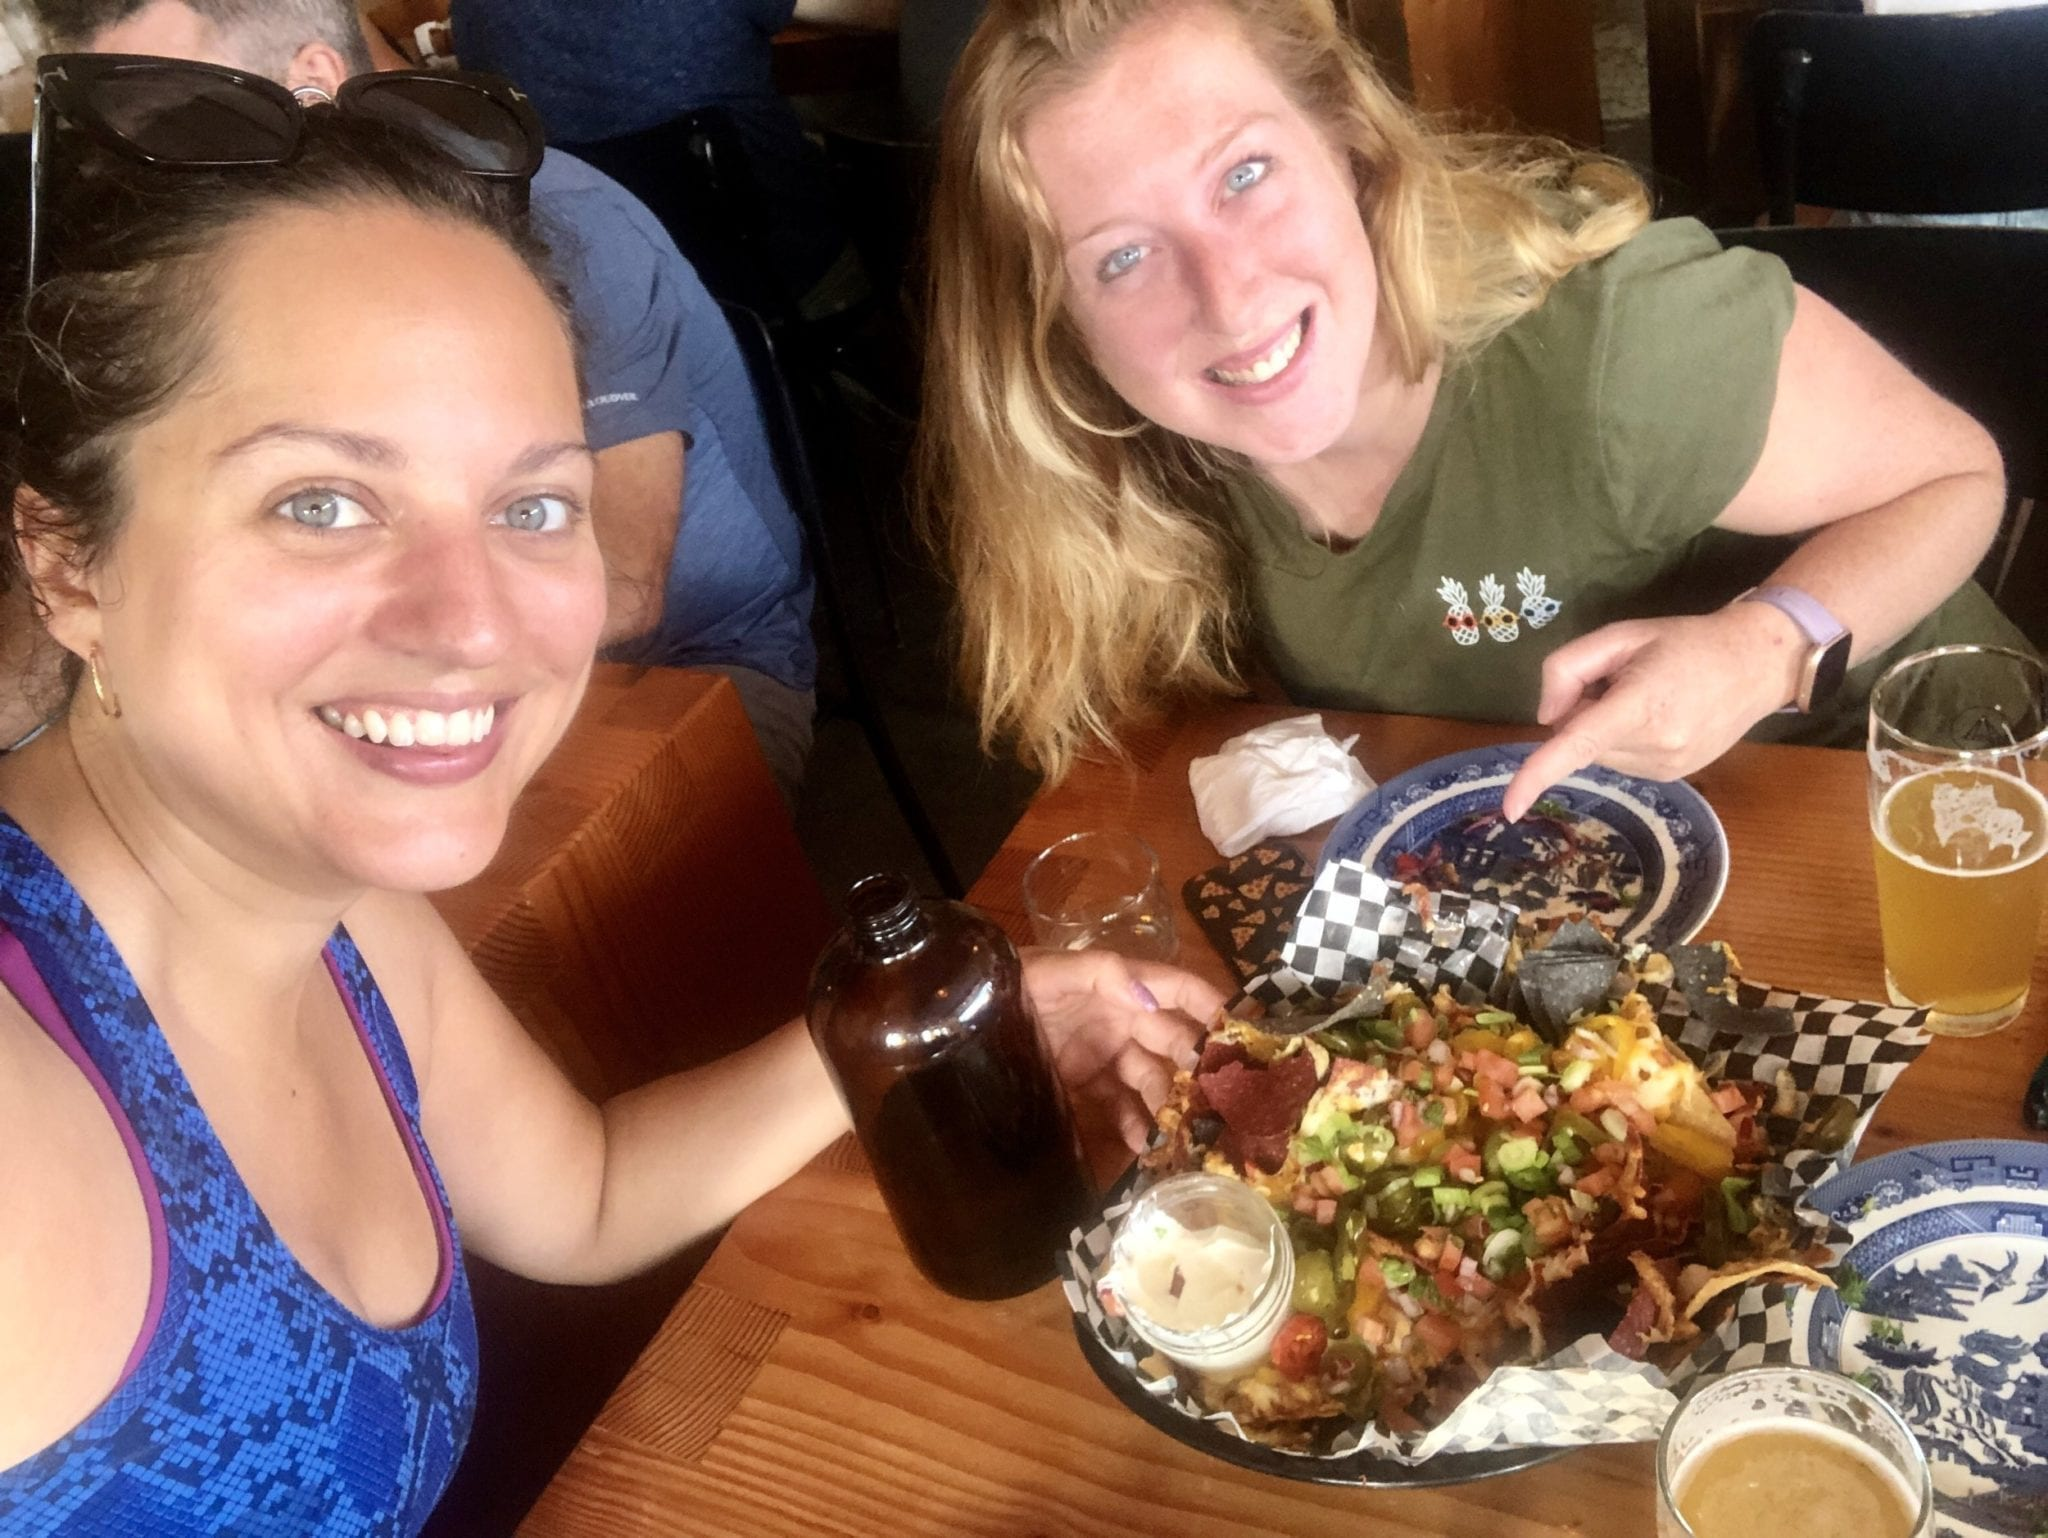 Kate and Candice pose for a selfie with beers and nachos.